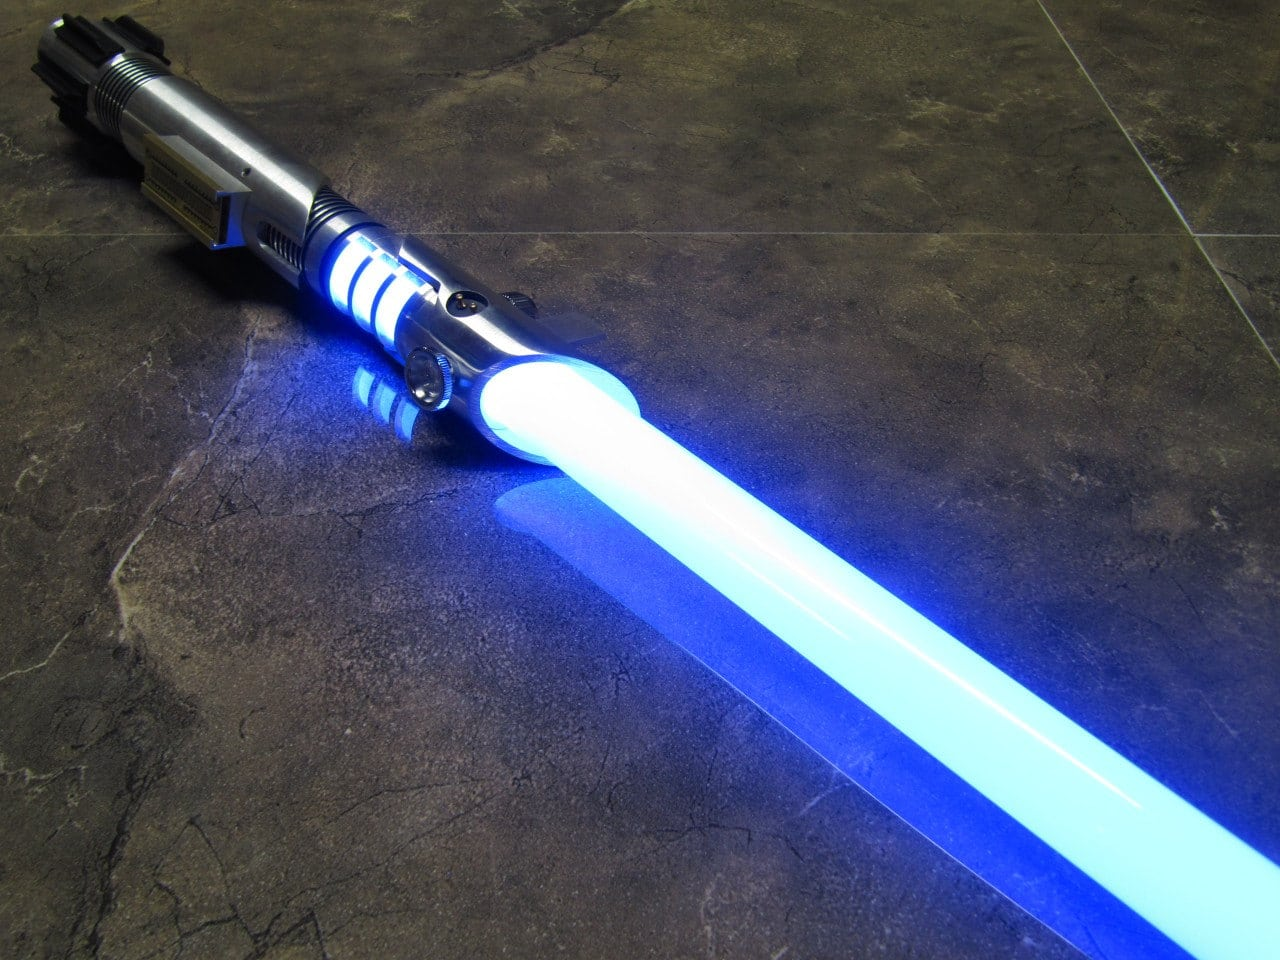 Behold The Most Realistic Role Playing Led Lightsabers To Date